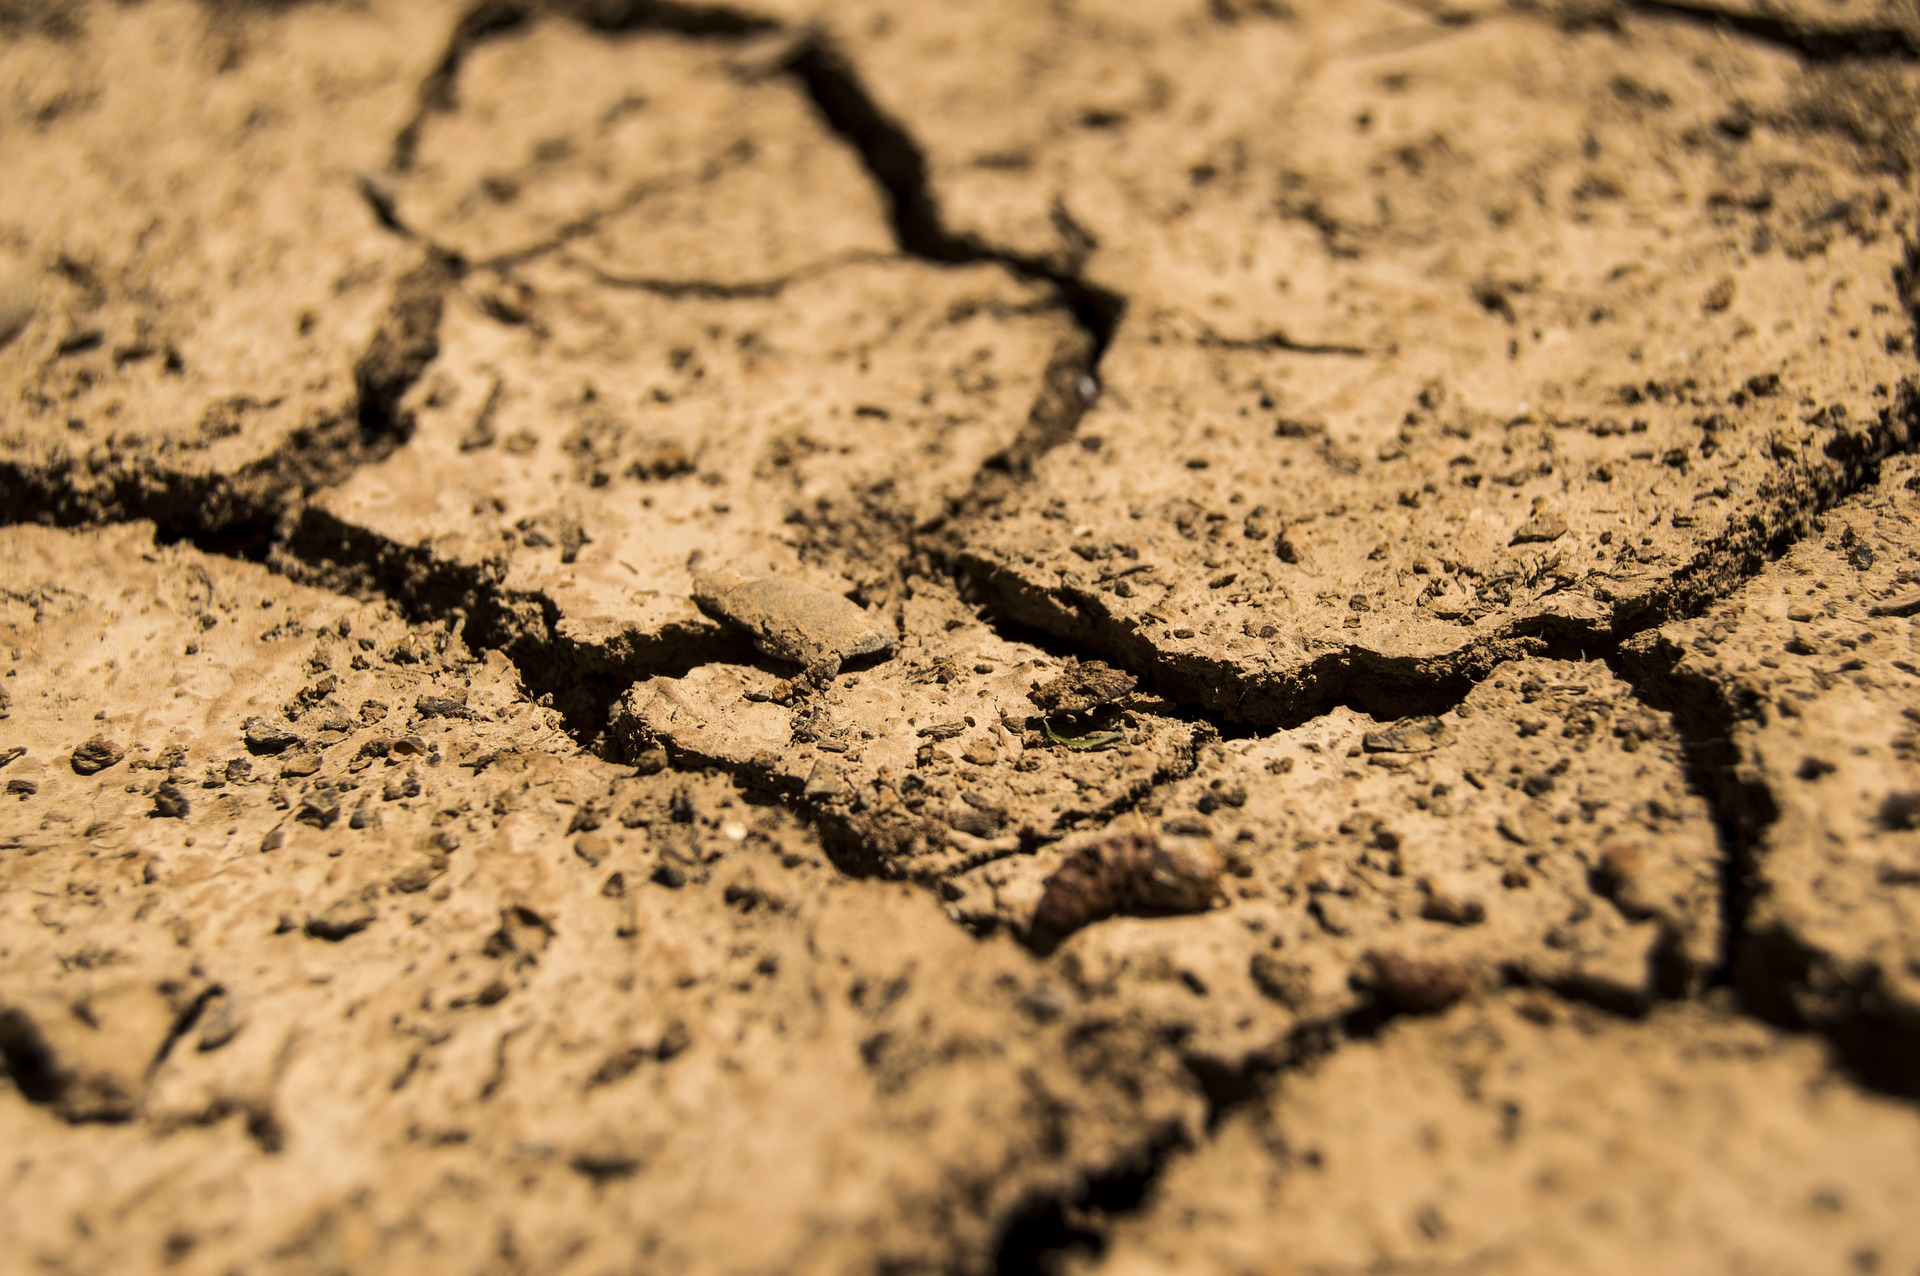 Dry cracked earth in heat stricken areas of drought